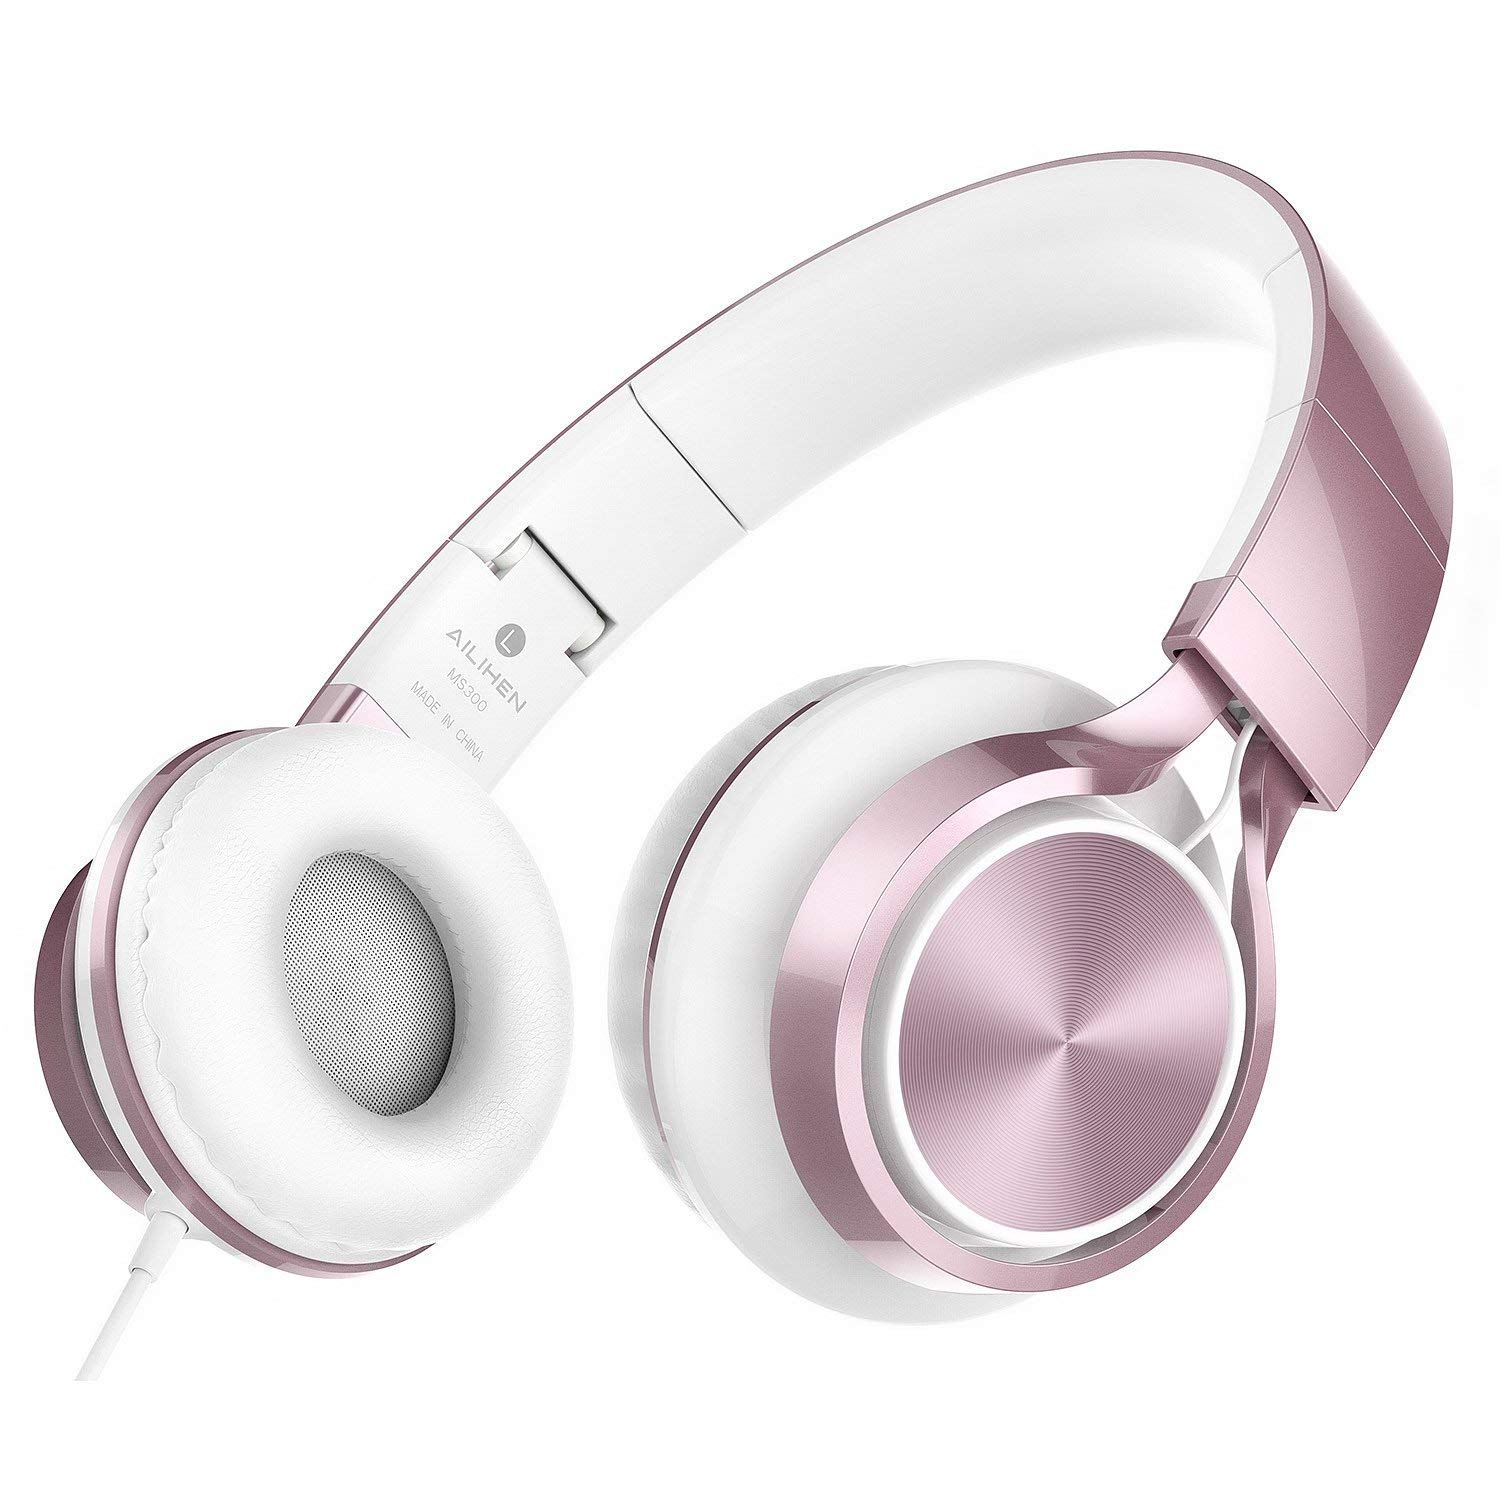 AILIHEN MS300 Wired Headphones, Stereo Foldable Headset for iOS Android Smartphone Laptop Tablet PC Computer (Rose Gold) by AILIHEN